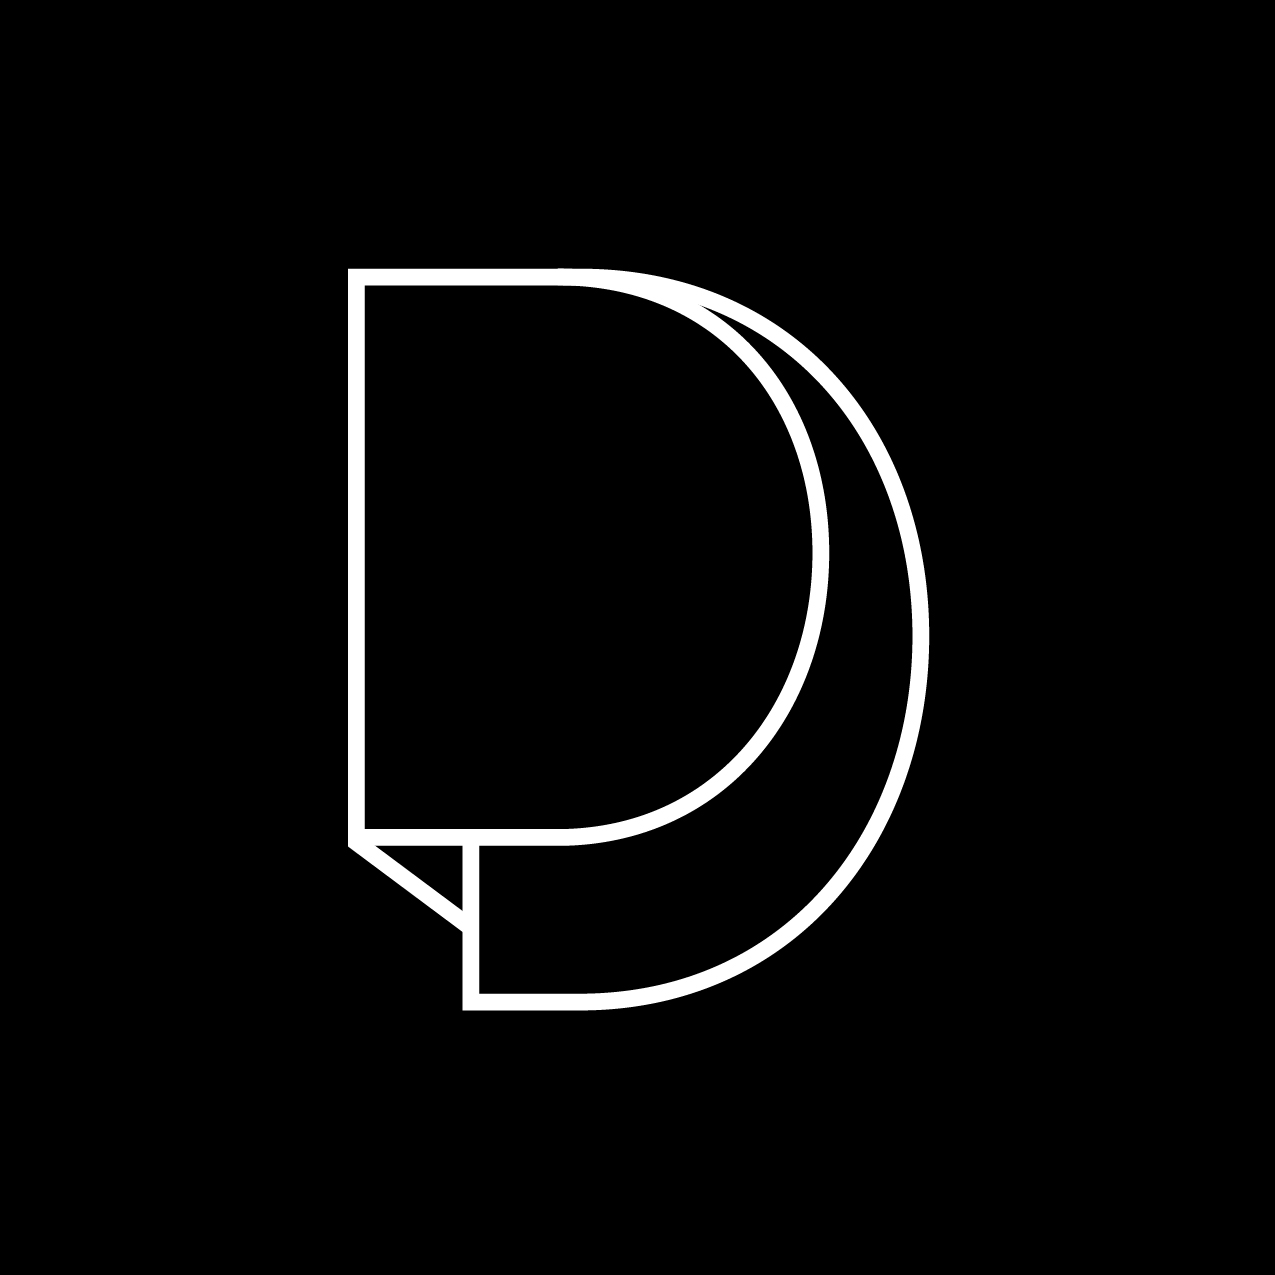 Letter D10 design by Furia